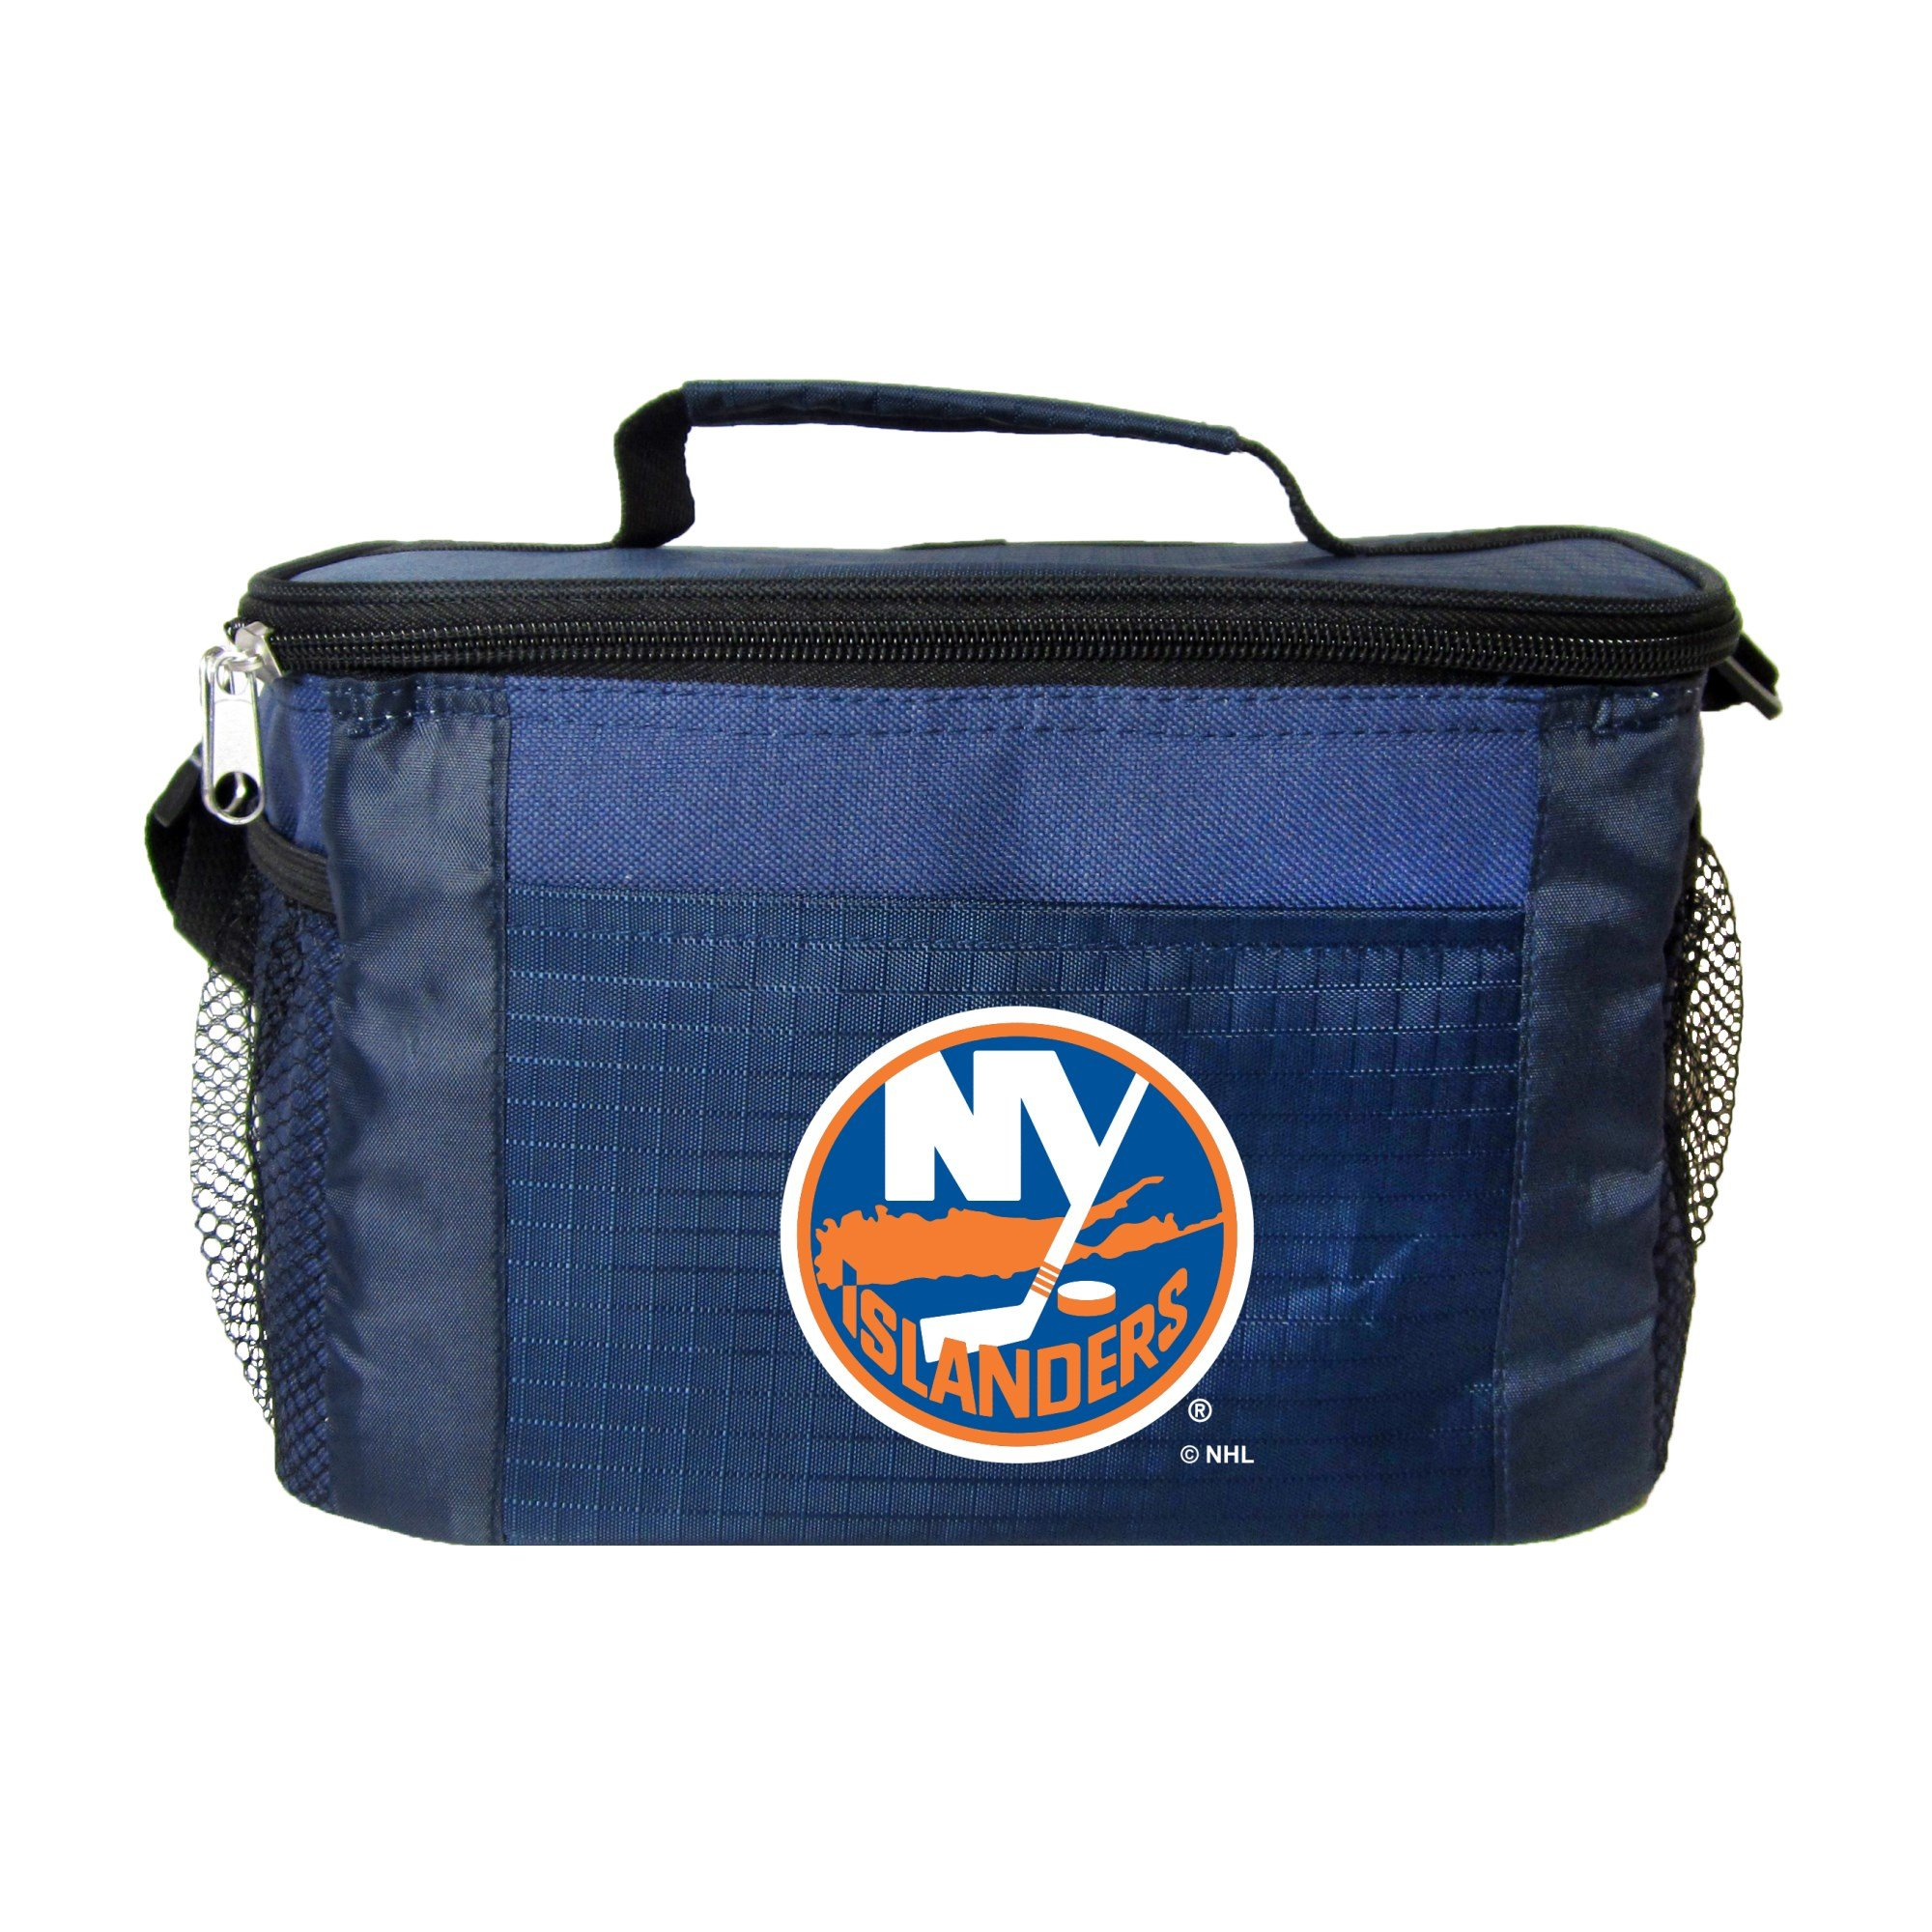 NHL New York Islanders Insulated Lunch Cooler Bag with Zipper Closure, Navy